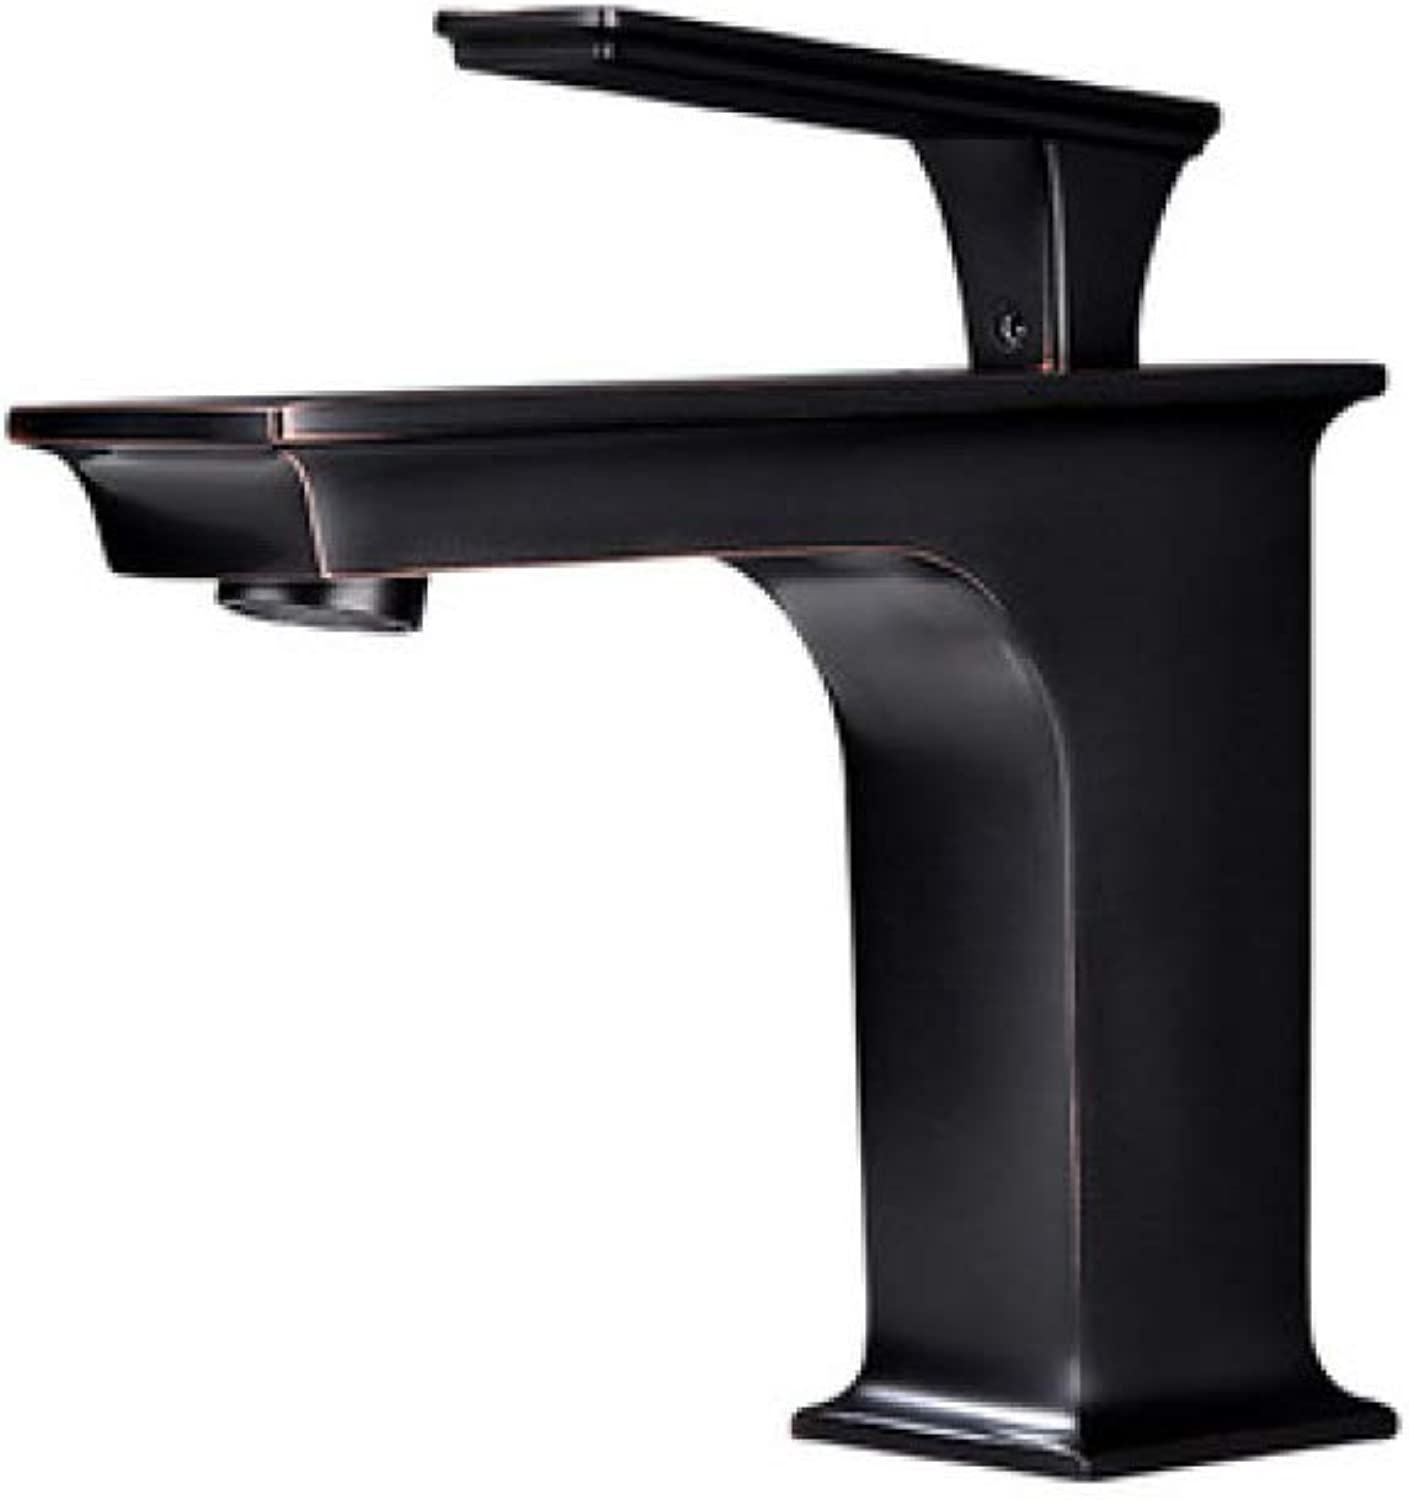 PYIP Water Filter Taps European Style Copper Hot And Cold Washbasin Above Counter Basin Black Bronze Retro Faucet